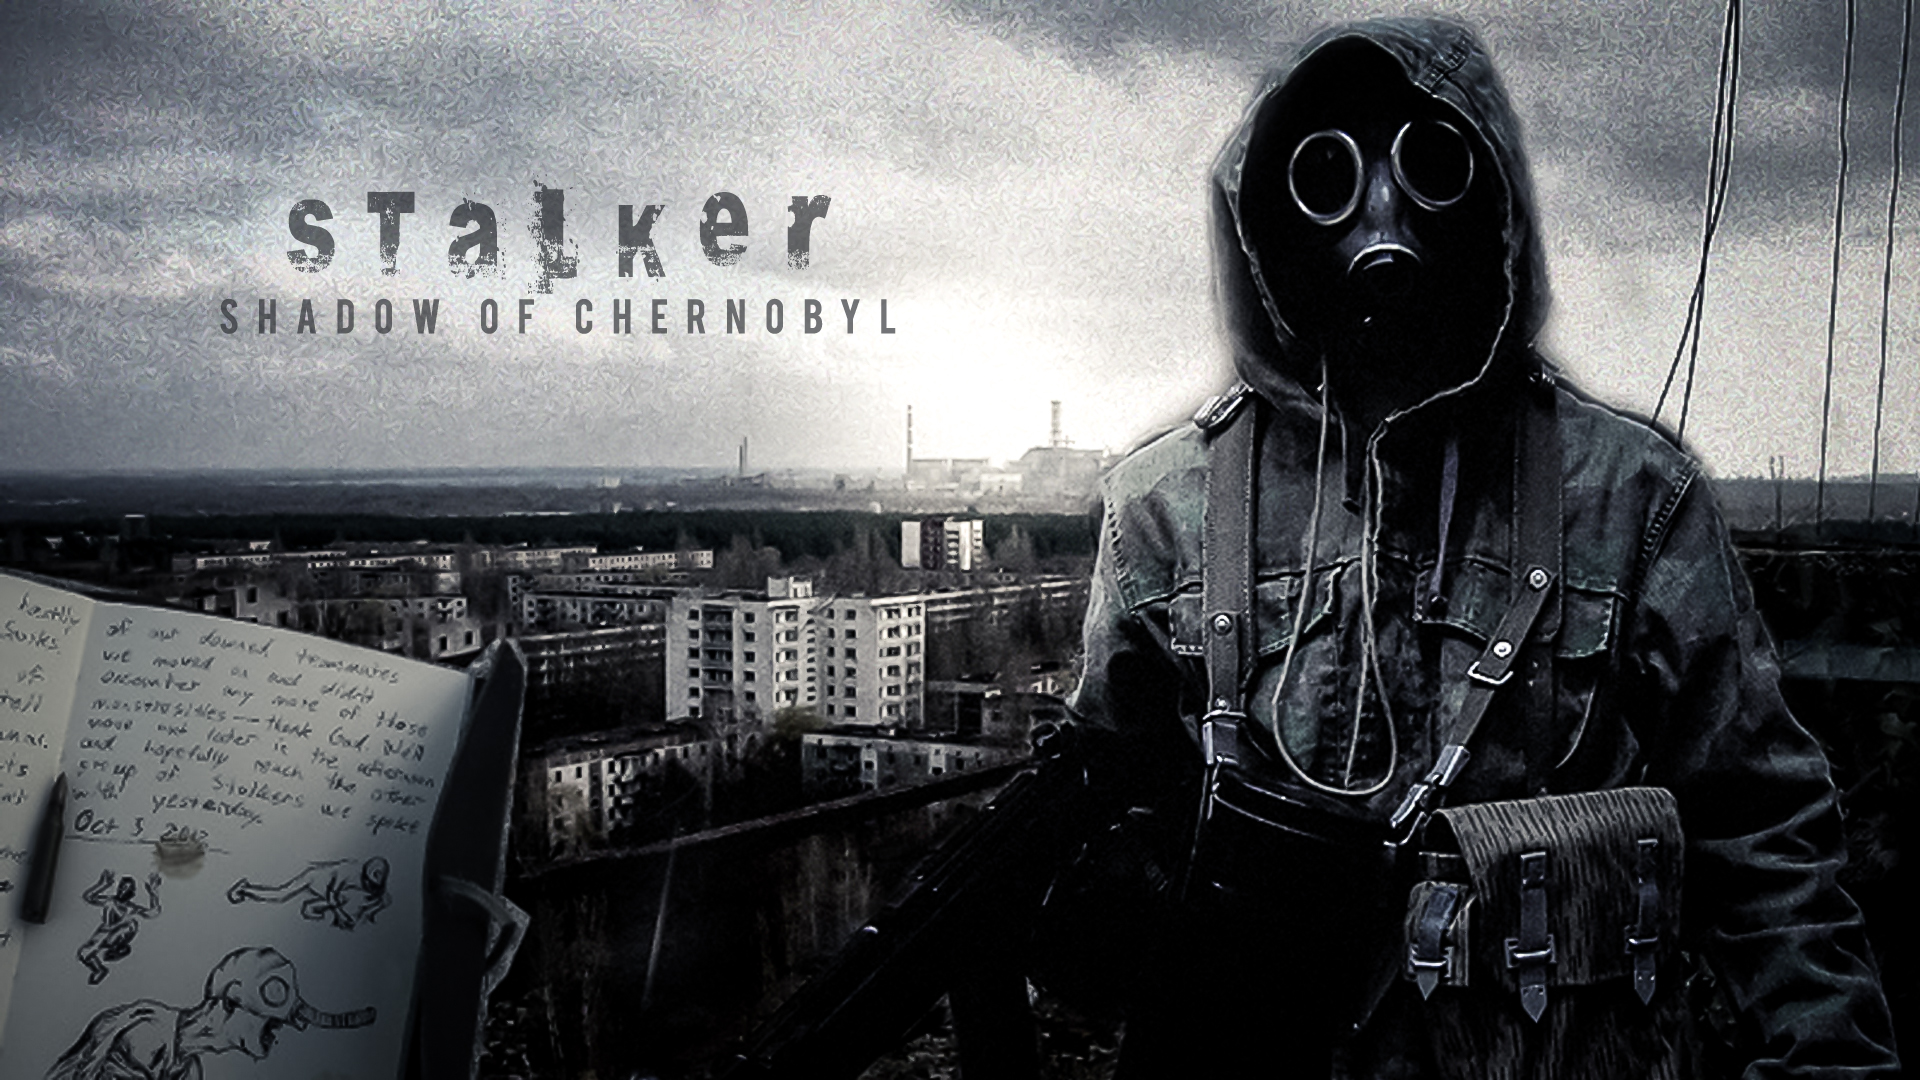 stalker___wallpaper__2013_version__by_caparzofpc-d60dsv7.png